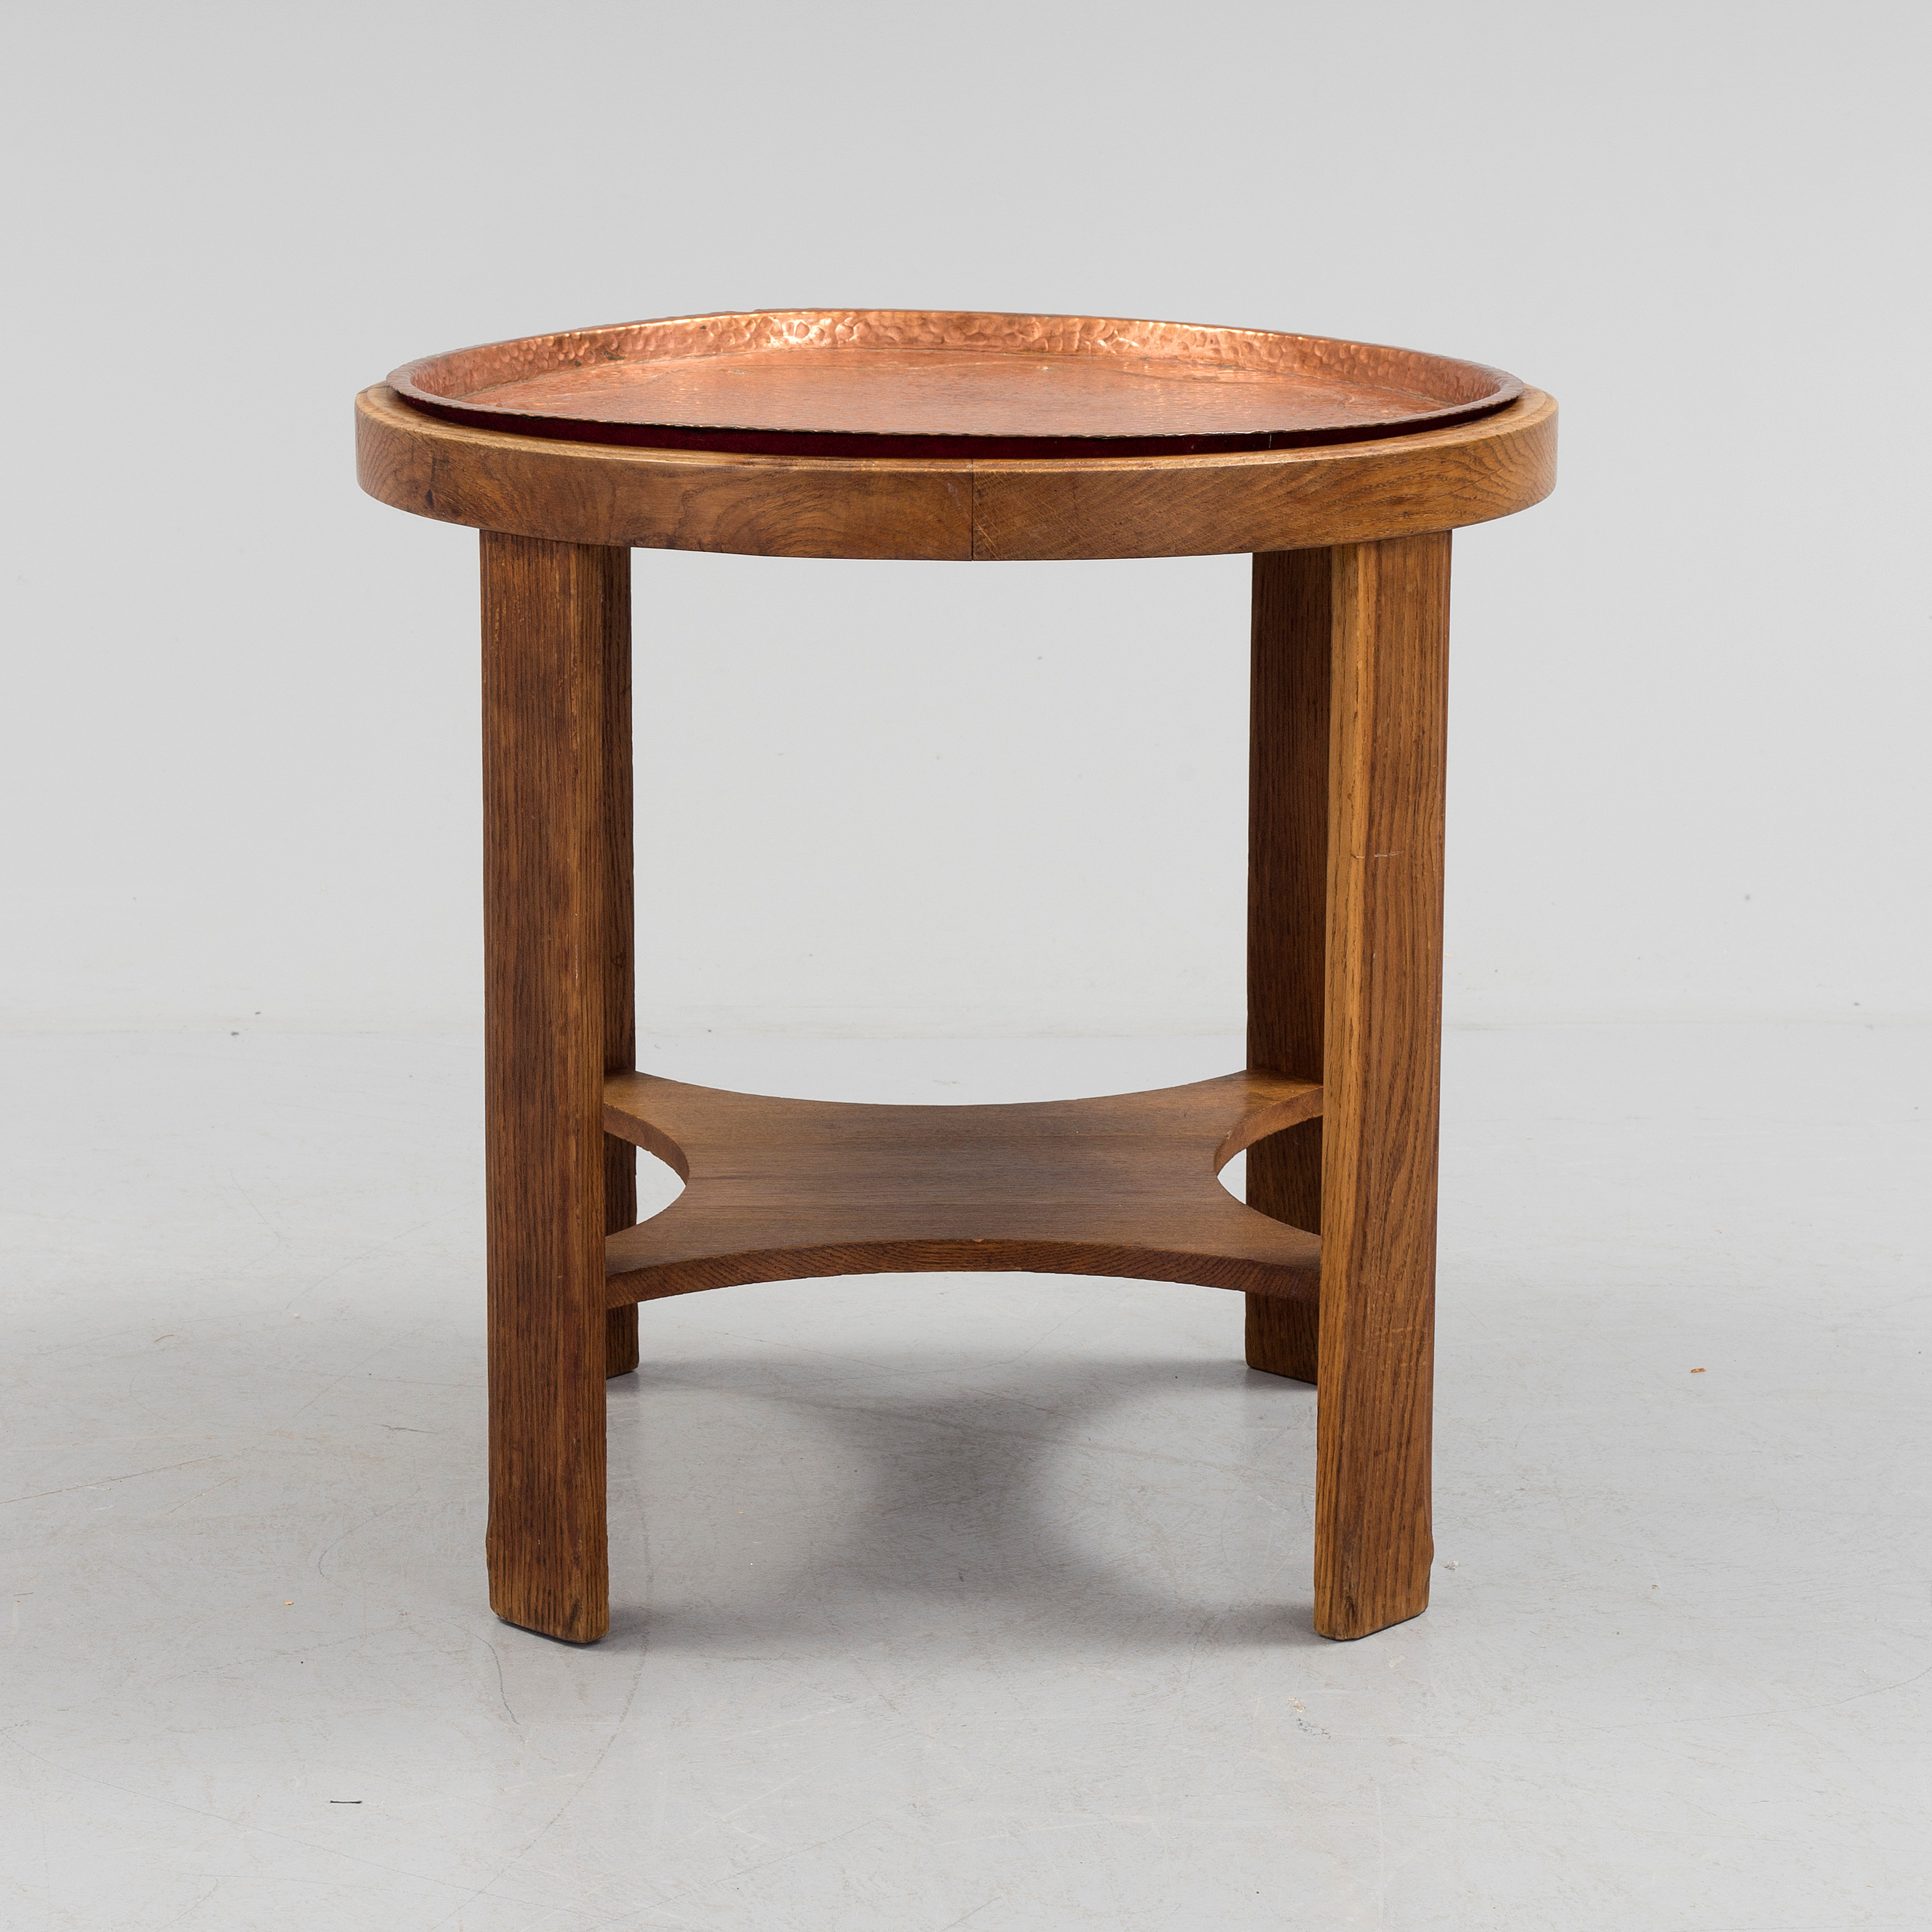 JUGEND A early 20th century Jugend oak coffee table with copper